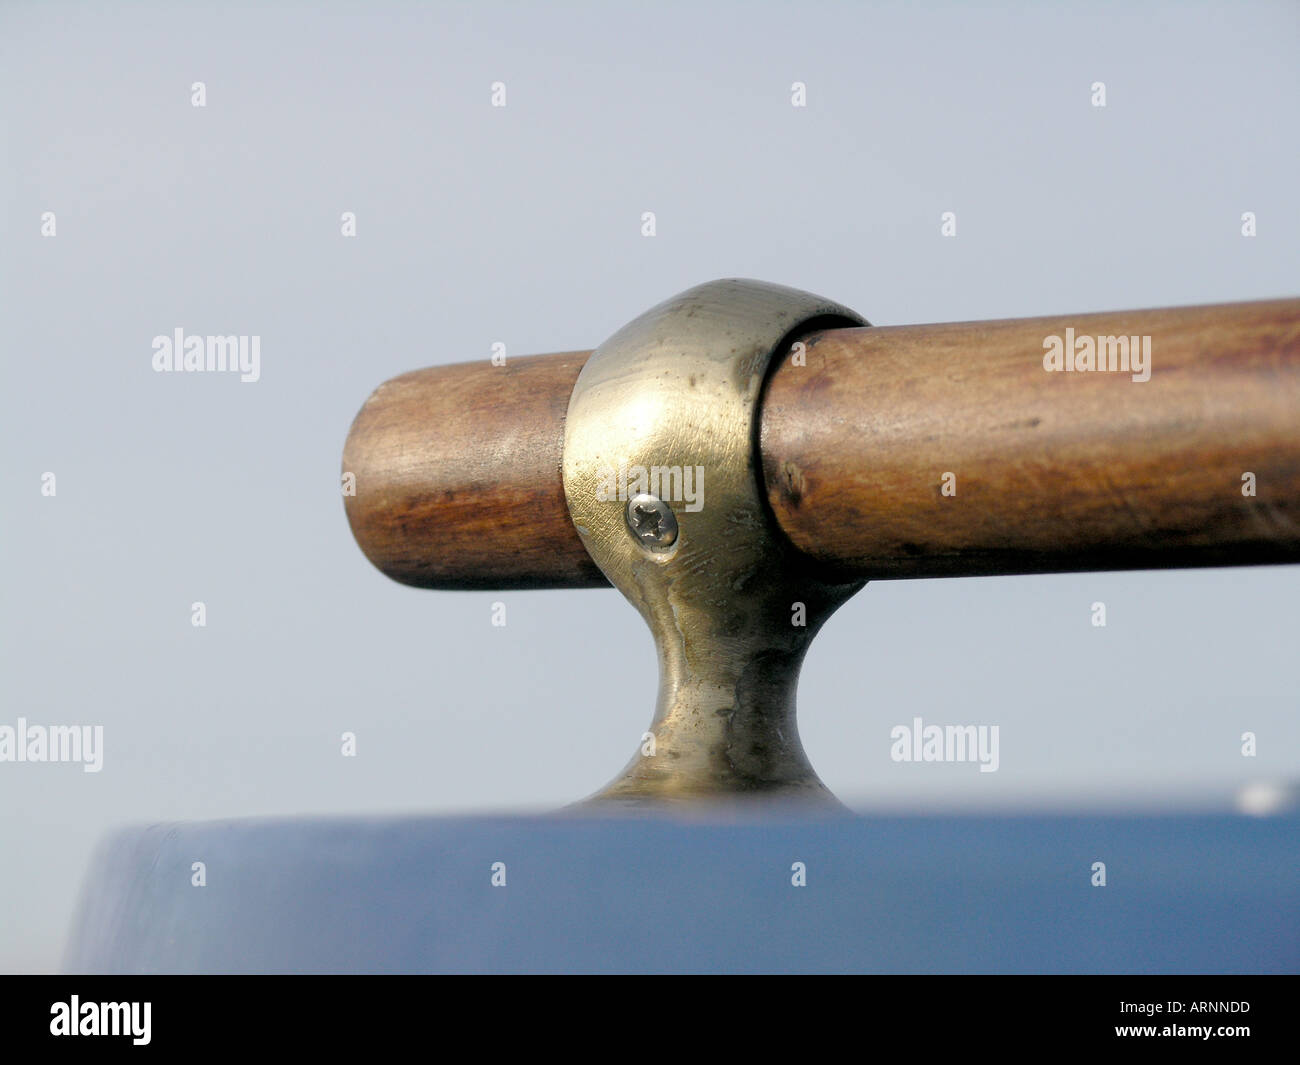 Handrail in brass fitting - Stock Image